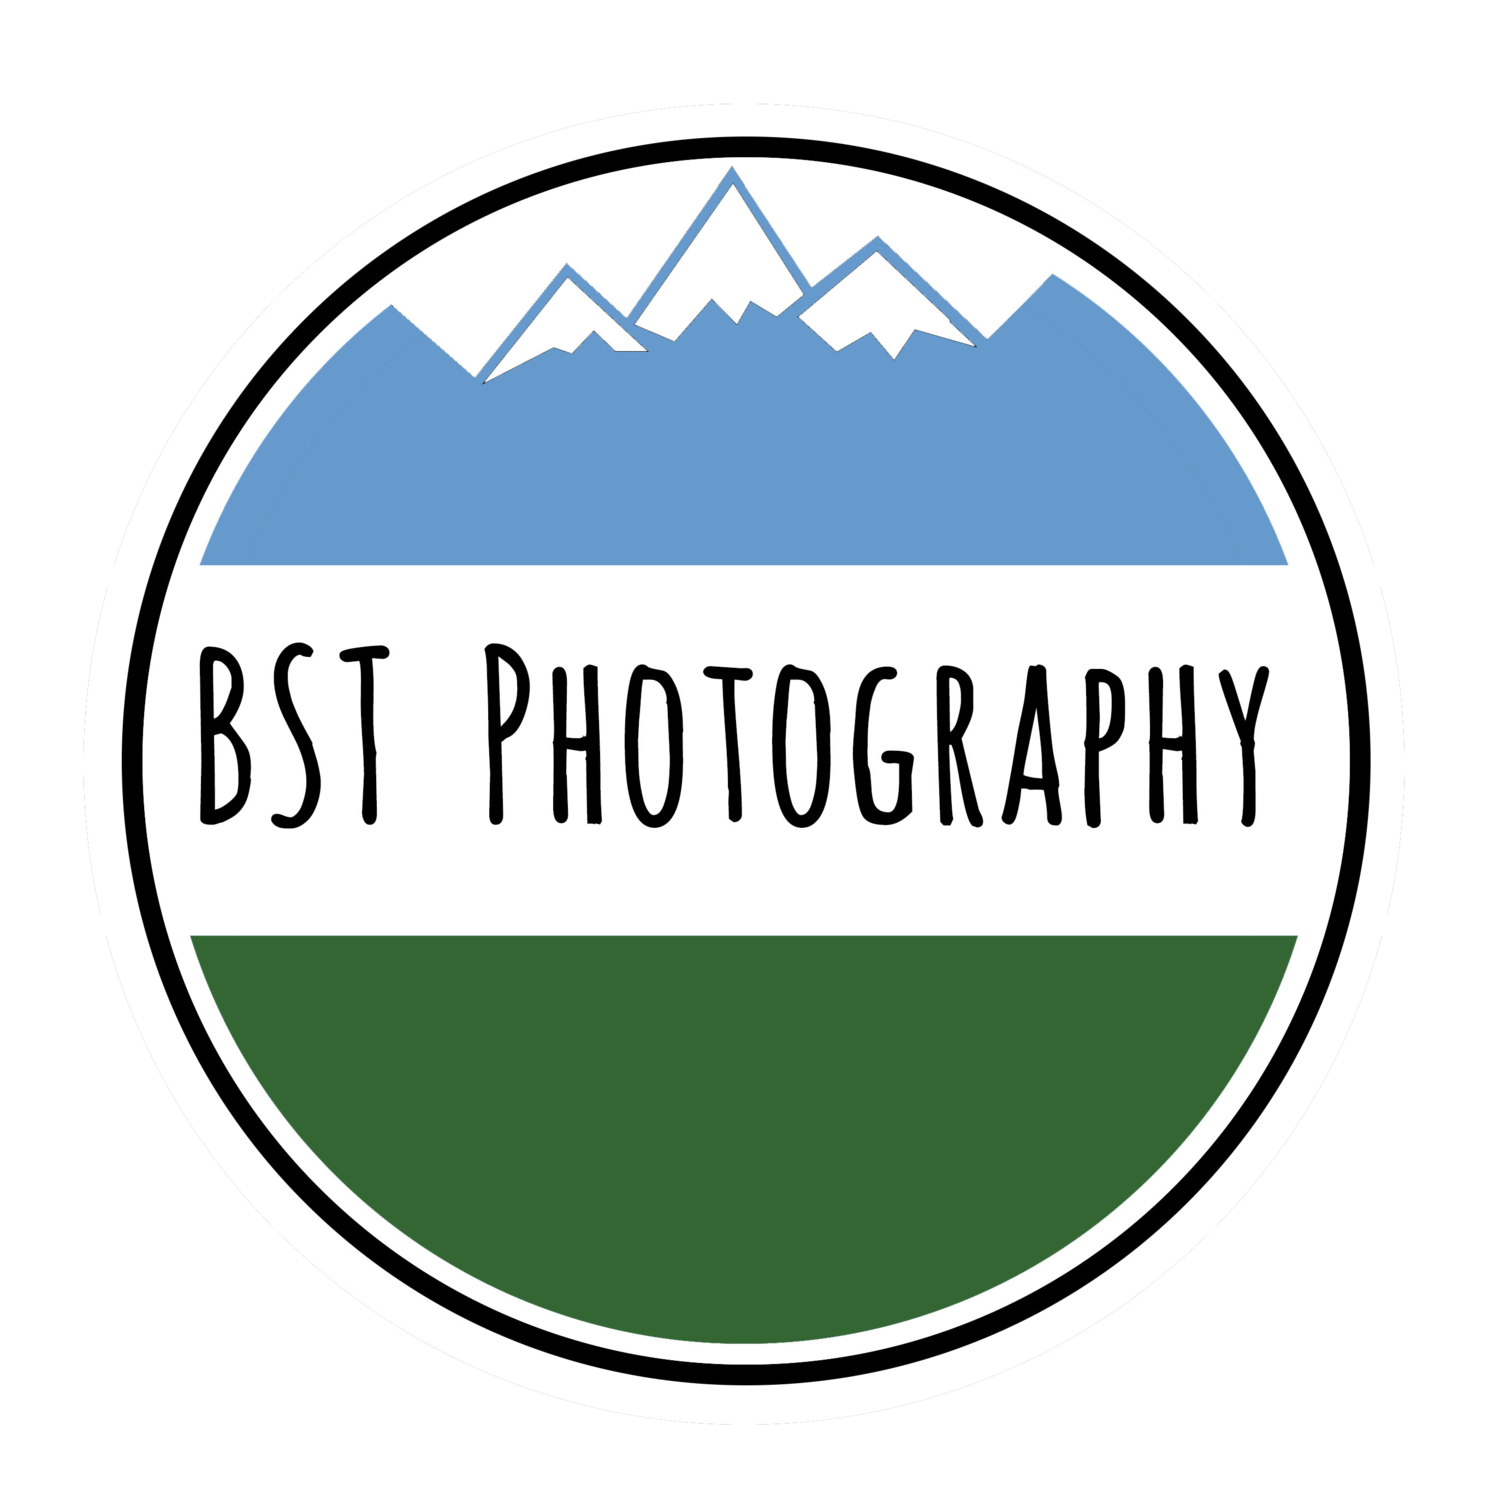 BST Photography